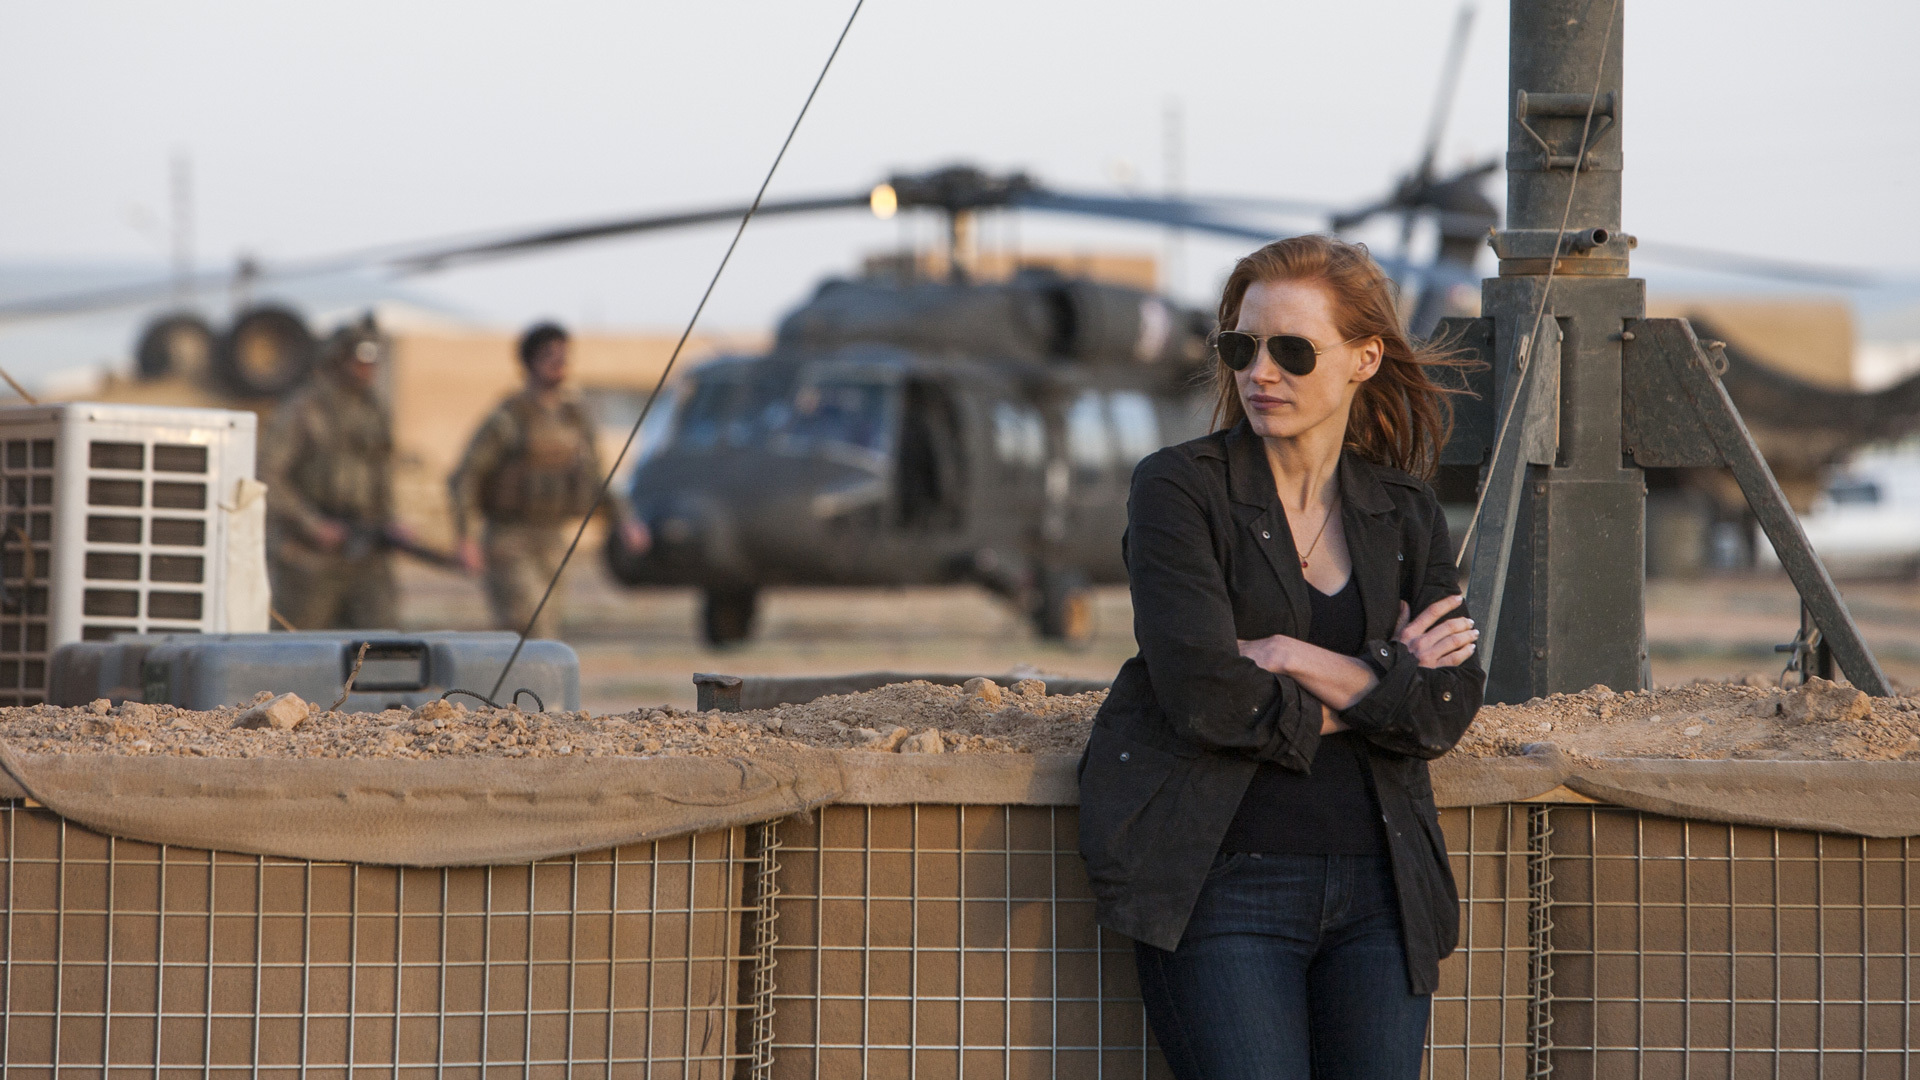 an evaluation of the mentality of willard james in kathryn bigelows war thriller zero dark thirty 20 So is private witt from the thin red line & captain willard vietnam war bad for two straight hours james itself-kathryn-bigelows-zero-dark-thirty).